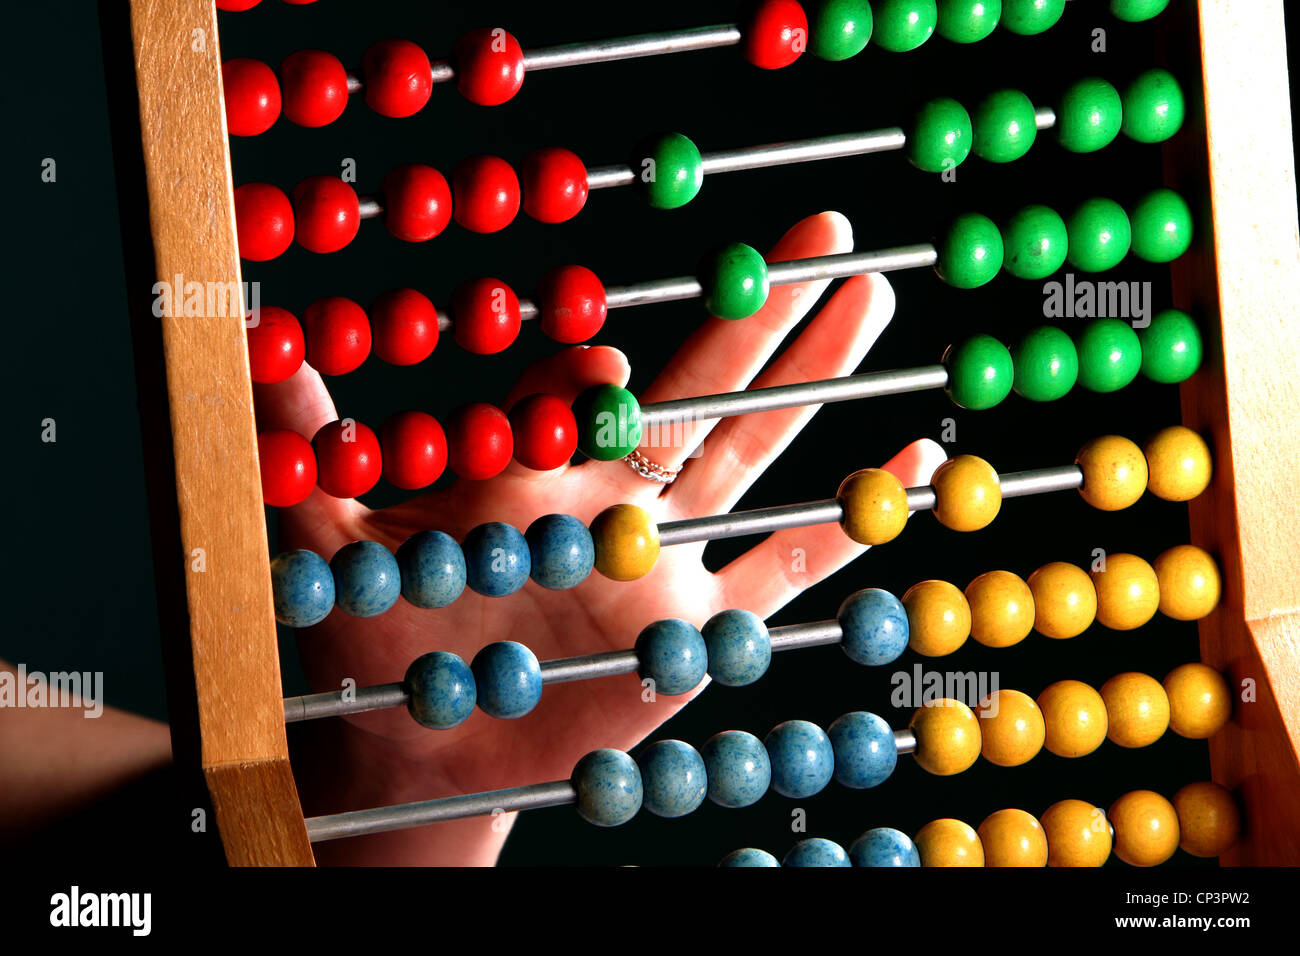 abacus with hand on a dark background - Stock Image